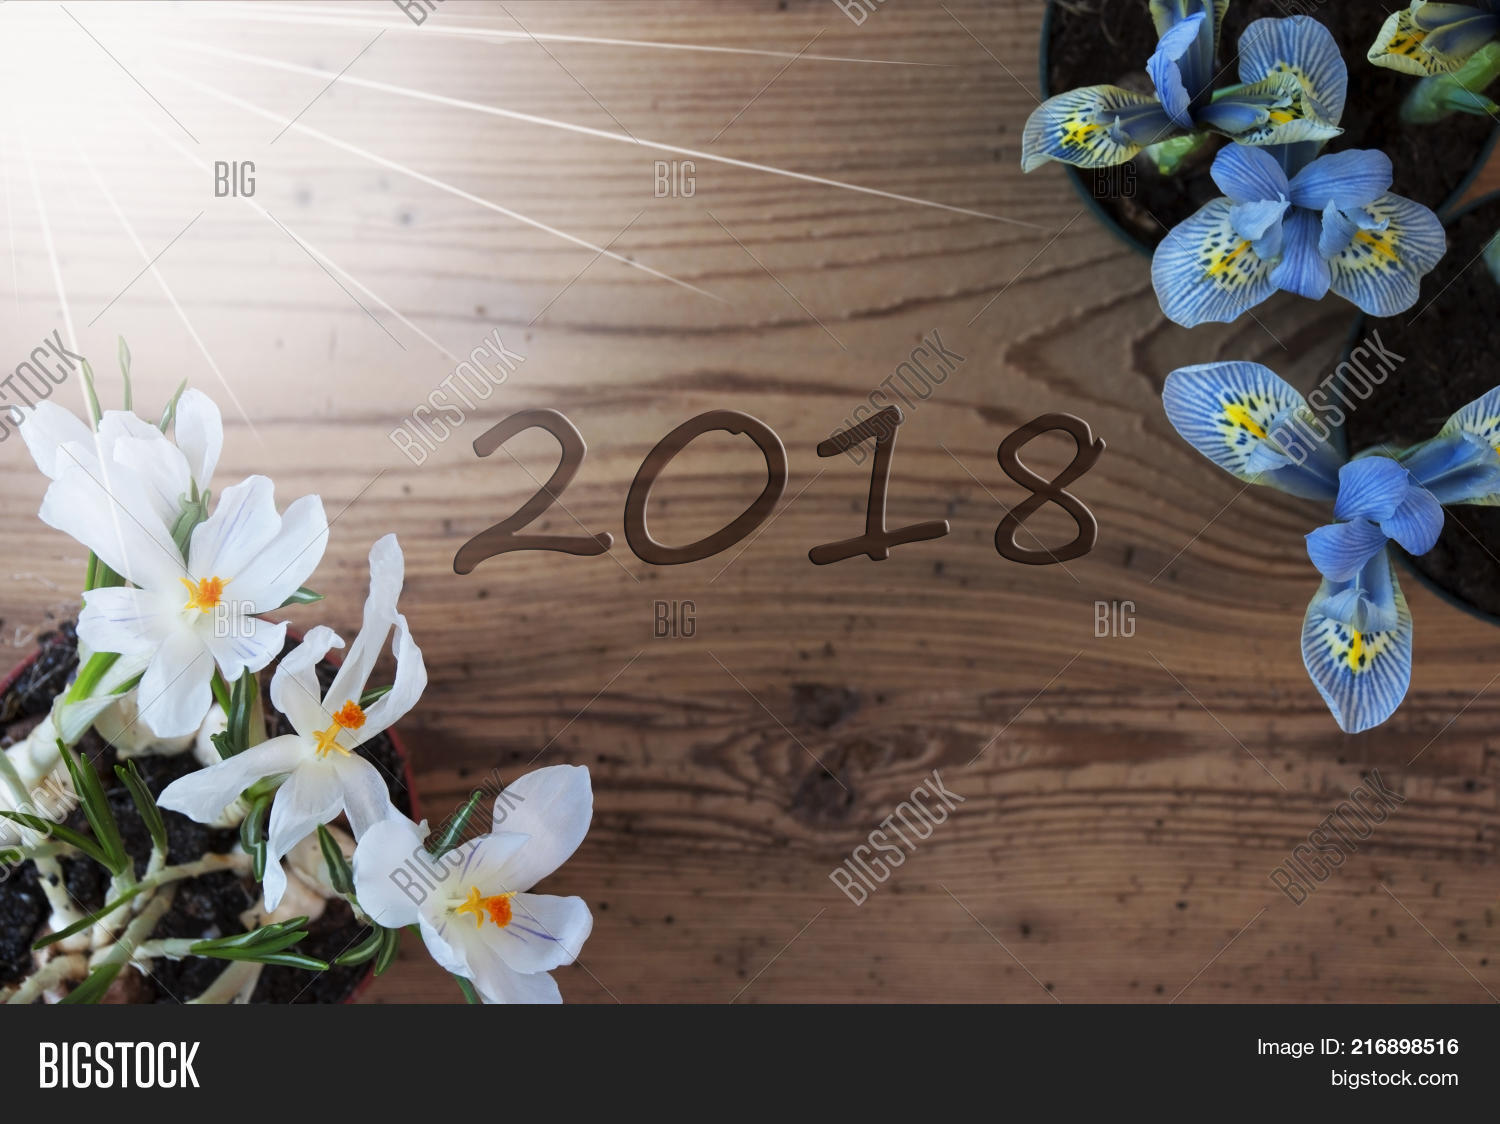 Wooden Background Text Image Photo Free Trial Bigstock